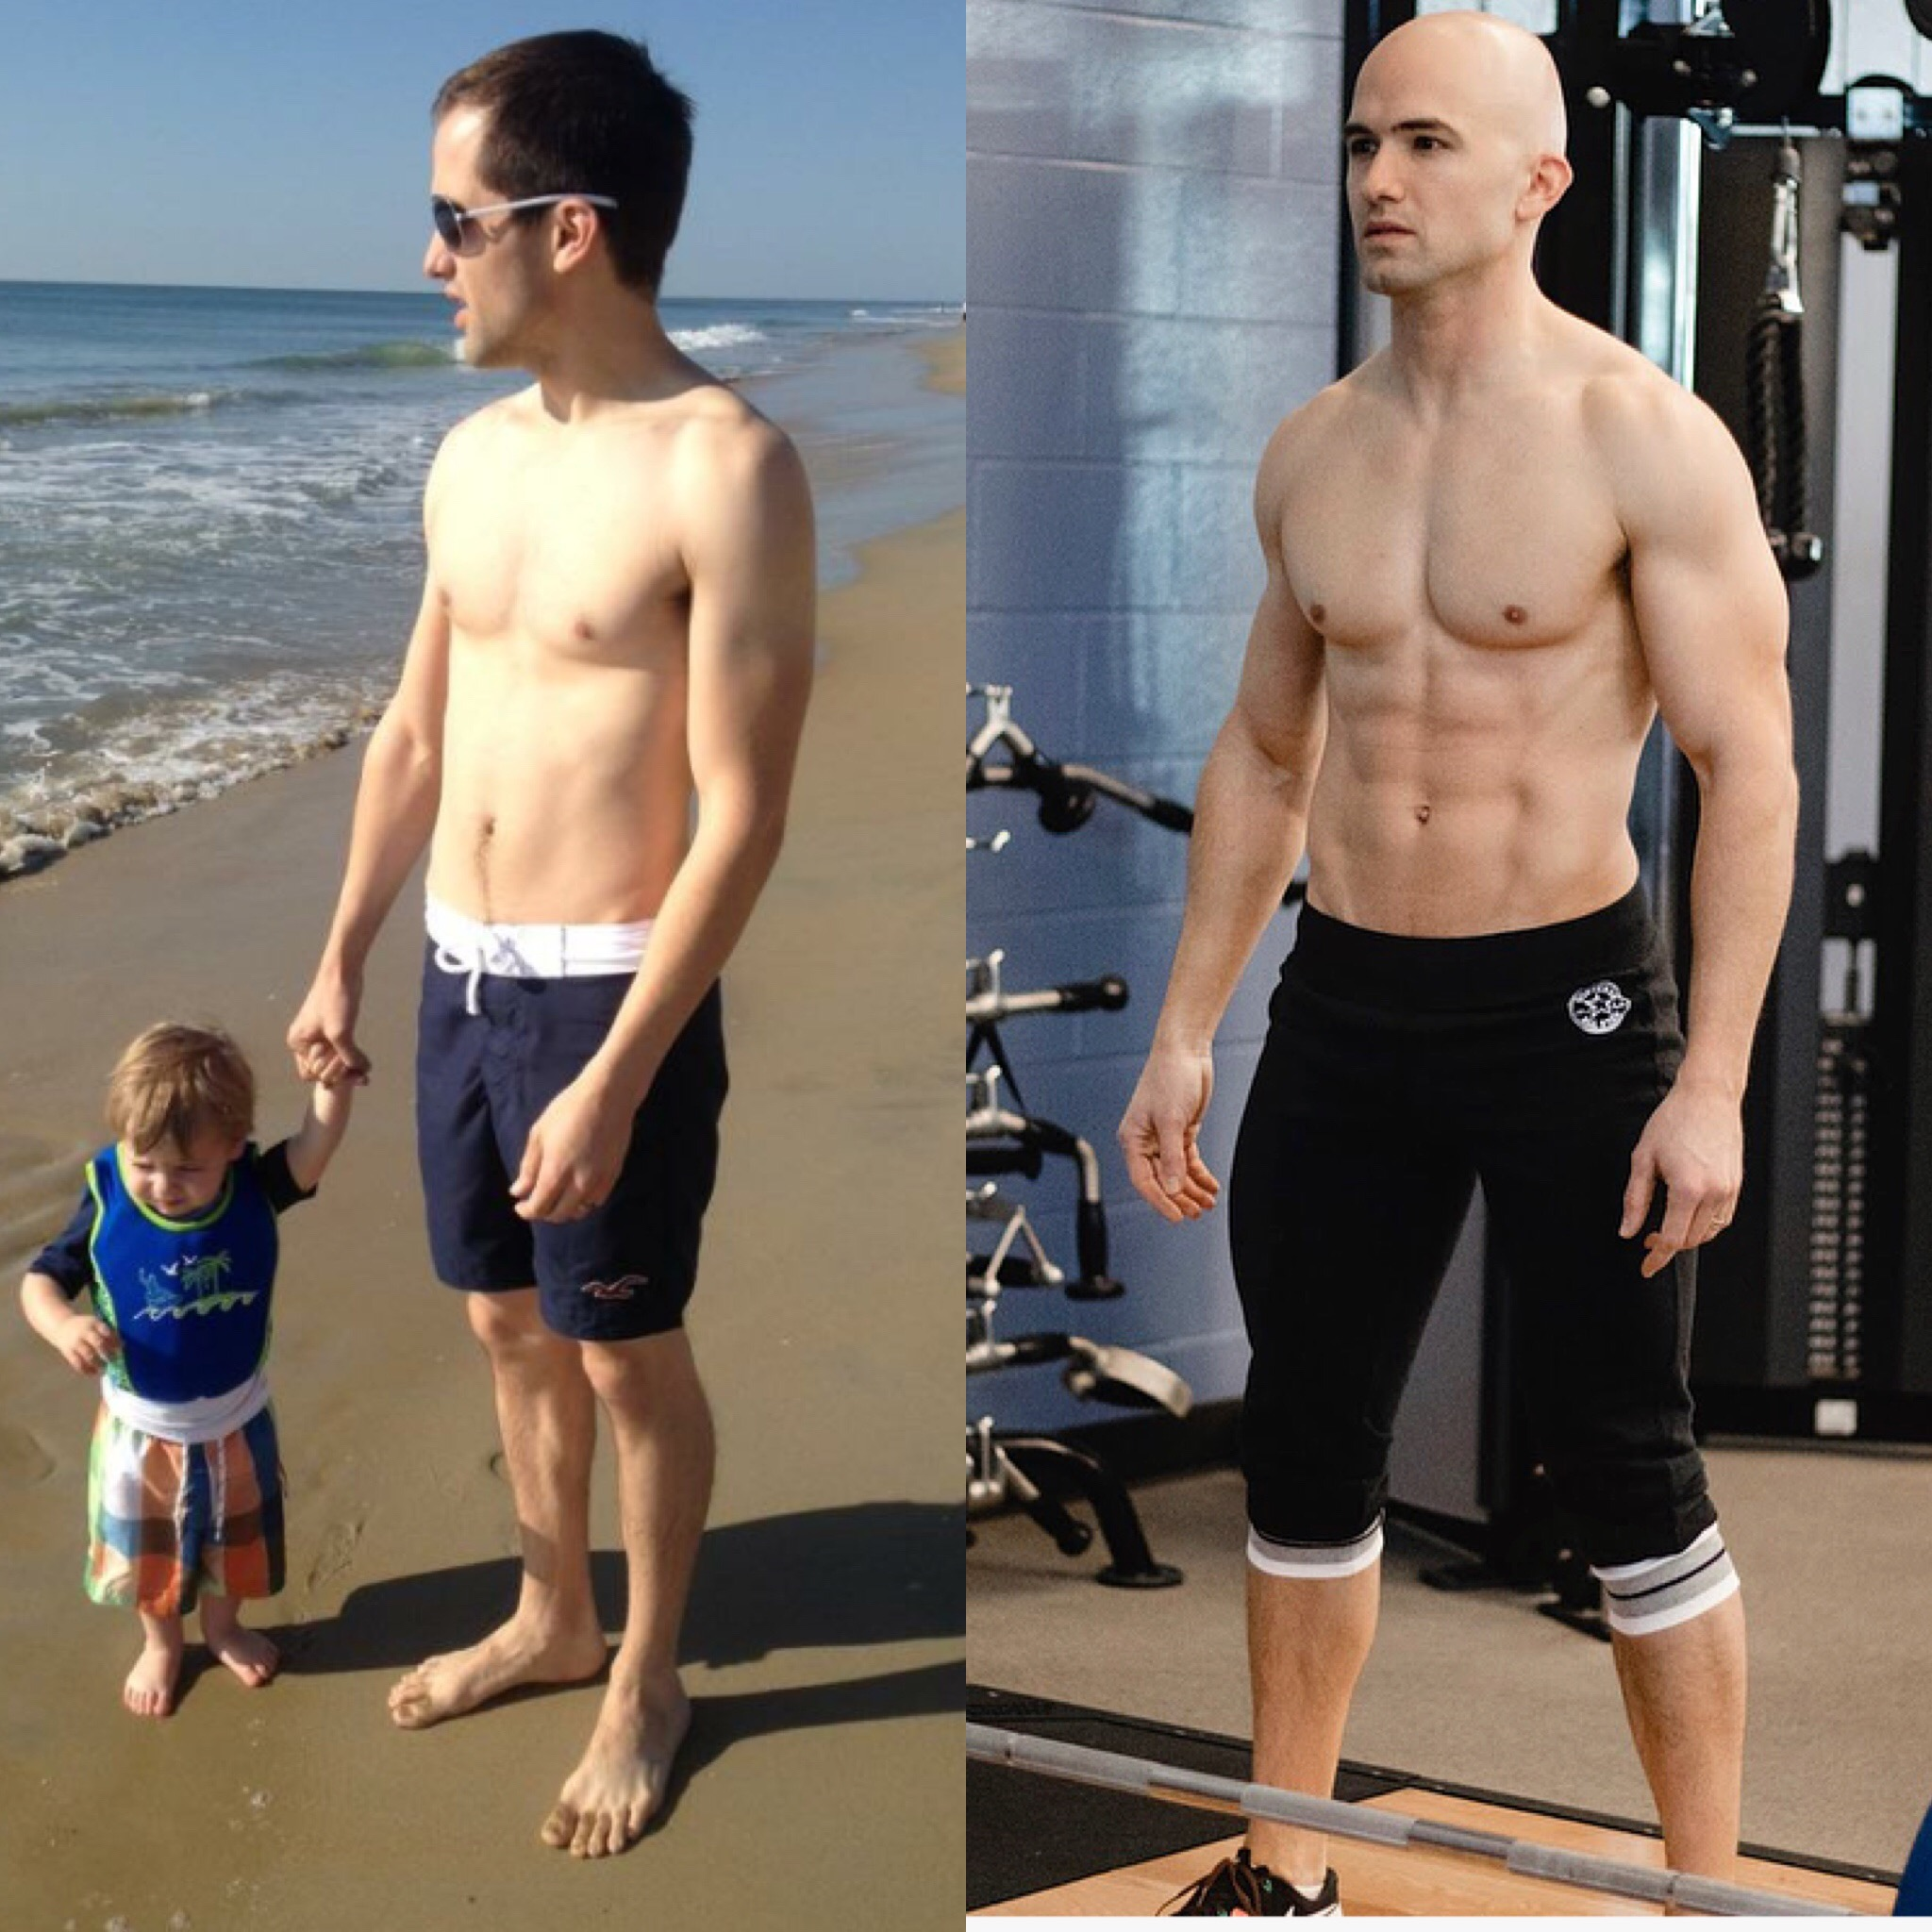 My Transformation - My name is Michael Ashford.I'm just like you. I've got a family, I've got a full-time job (as a marketing executive at a software company), and I've got my hobbies and passions.But in 2012 when I went to the beach with my wife and then-almost-2-year-old son, and my wife snapped the picture of me you see on the left, I saw the picture and was hit with the reality that I was not doing all I could to ensure I was taking care of myself — for my sake and for my family's sake.I was merely getting by, and I decided to change.In the years since, I've dedicated myself to living a healthy, active lifestyle by working out at least five times a week. I've changed my diet, for health reasons (gluten intolerance) and because so much of our health is directly linked to the foods we consume.In July 2016, I became a certified personal trainer (NASM-CPT), further enhancing my dedication to fitness and health.I want to pass my love of fitness and health on to my kids – I have a son and a daughter – and also be healthy myself so that I can live a long, fulfilling life as I grow older. I want to give other busy fathers ideas for how to remain fit and active themselves and use that lifestyle to stay involved in their kids' lives instead of checking out, as I see so many fathers doing.Fit Dad Fitness is all about equipping fathers to live an active, involved, healthy life with their children.• Learn more about my membership site: The Daily Fit Dad• Learn more about my custom, one-on-one coaching• Read my transformation story as highlighted by Train Magazine and Men's Health Magazine.• Check out the brands with which I'm affiliated.